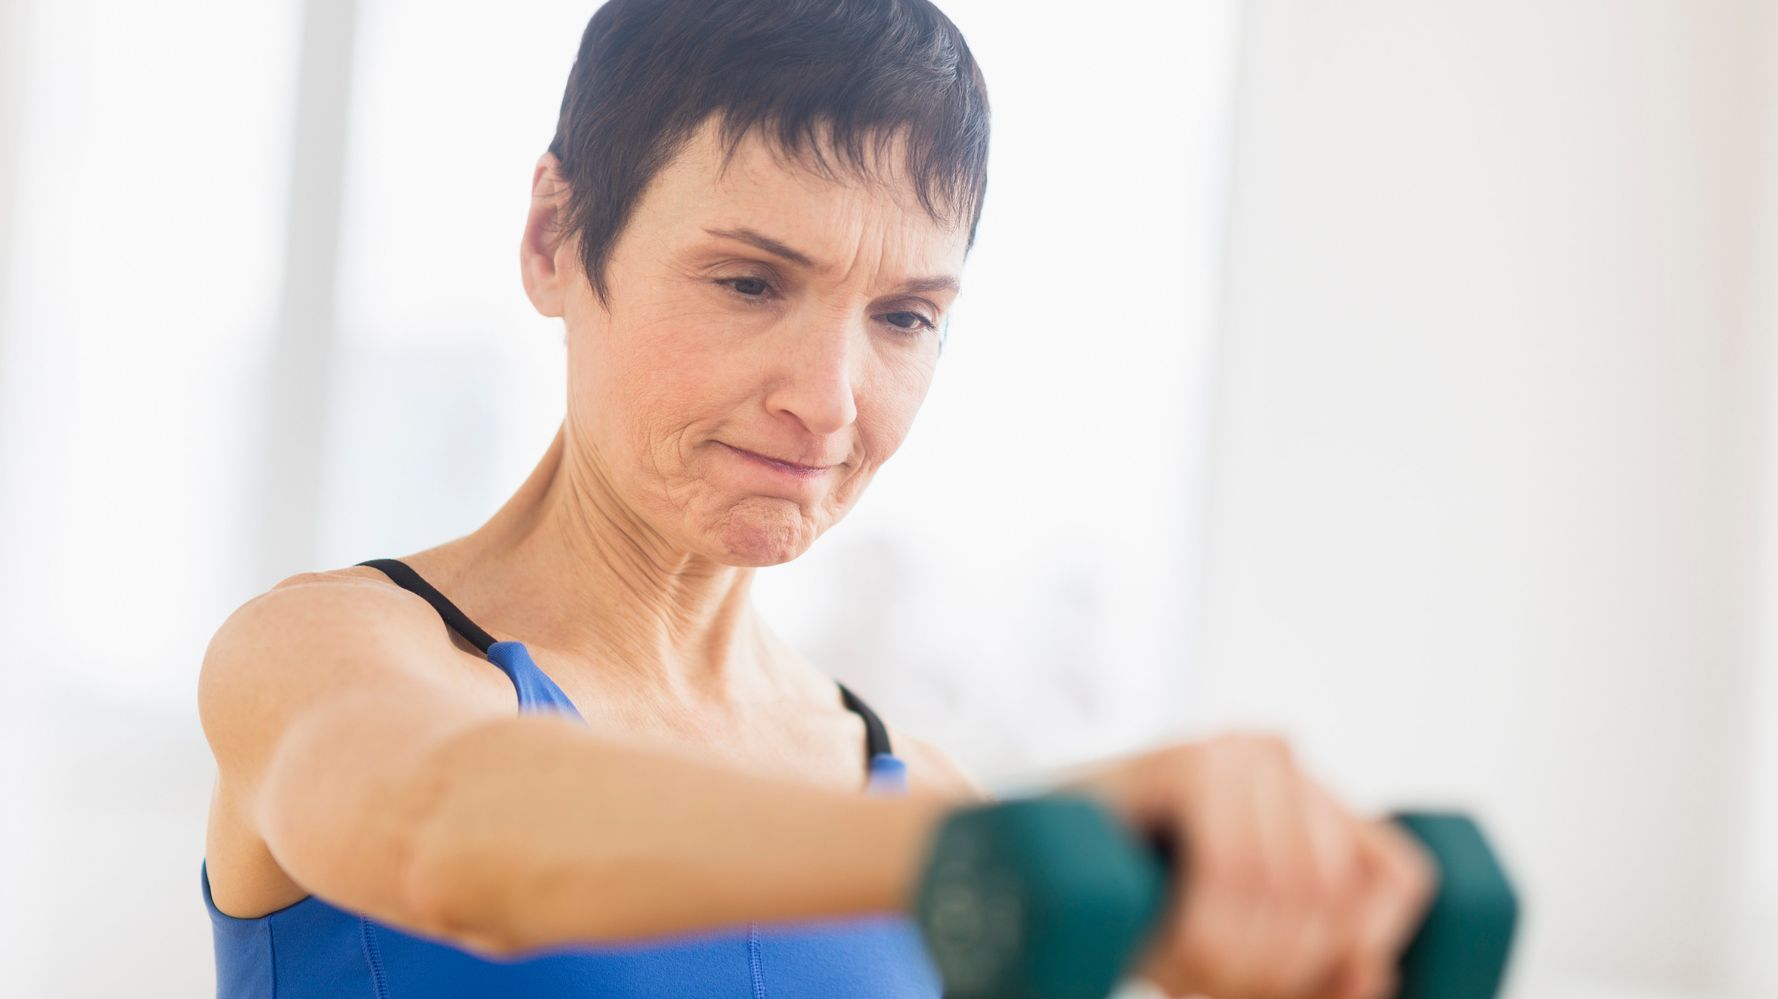 8 Things You Should Never Do During Your Workout